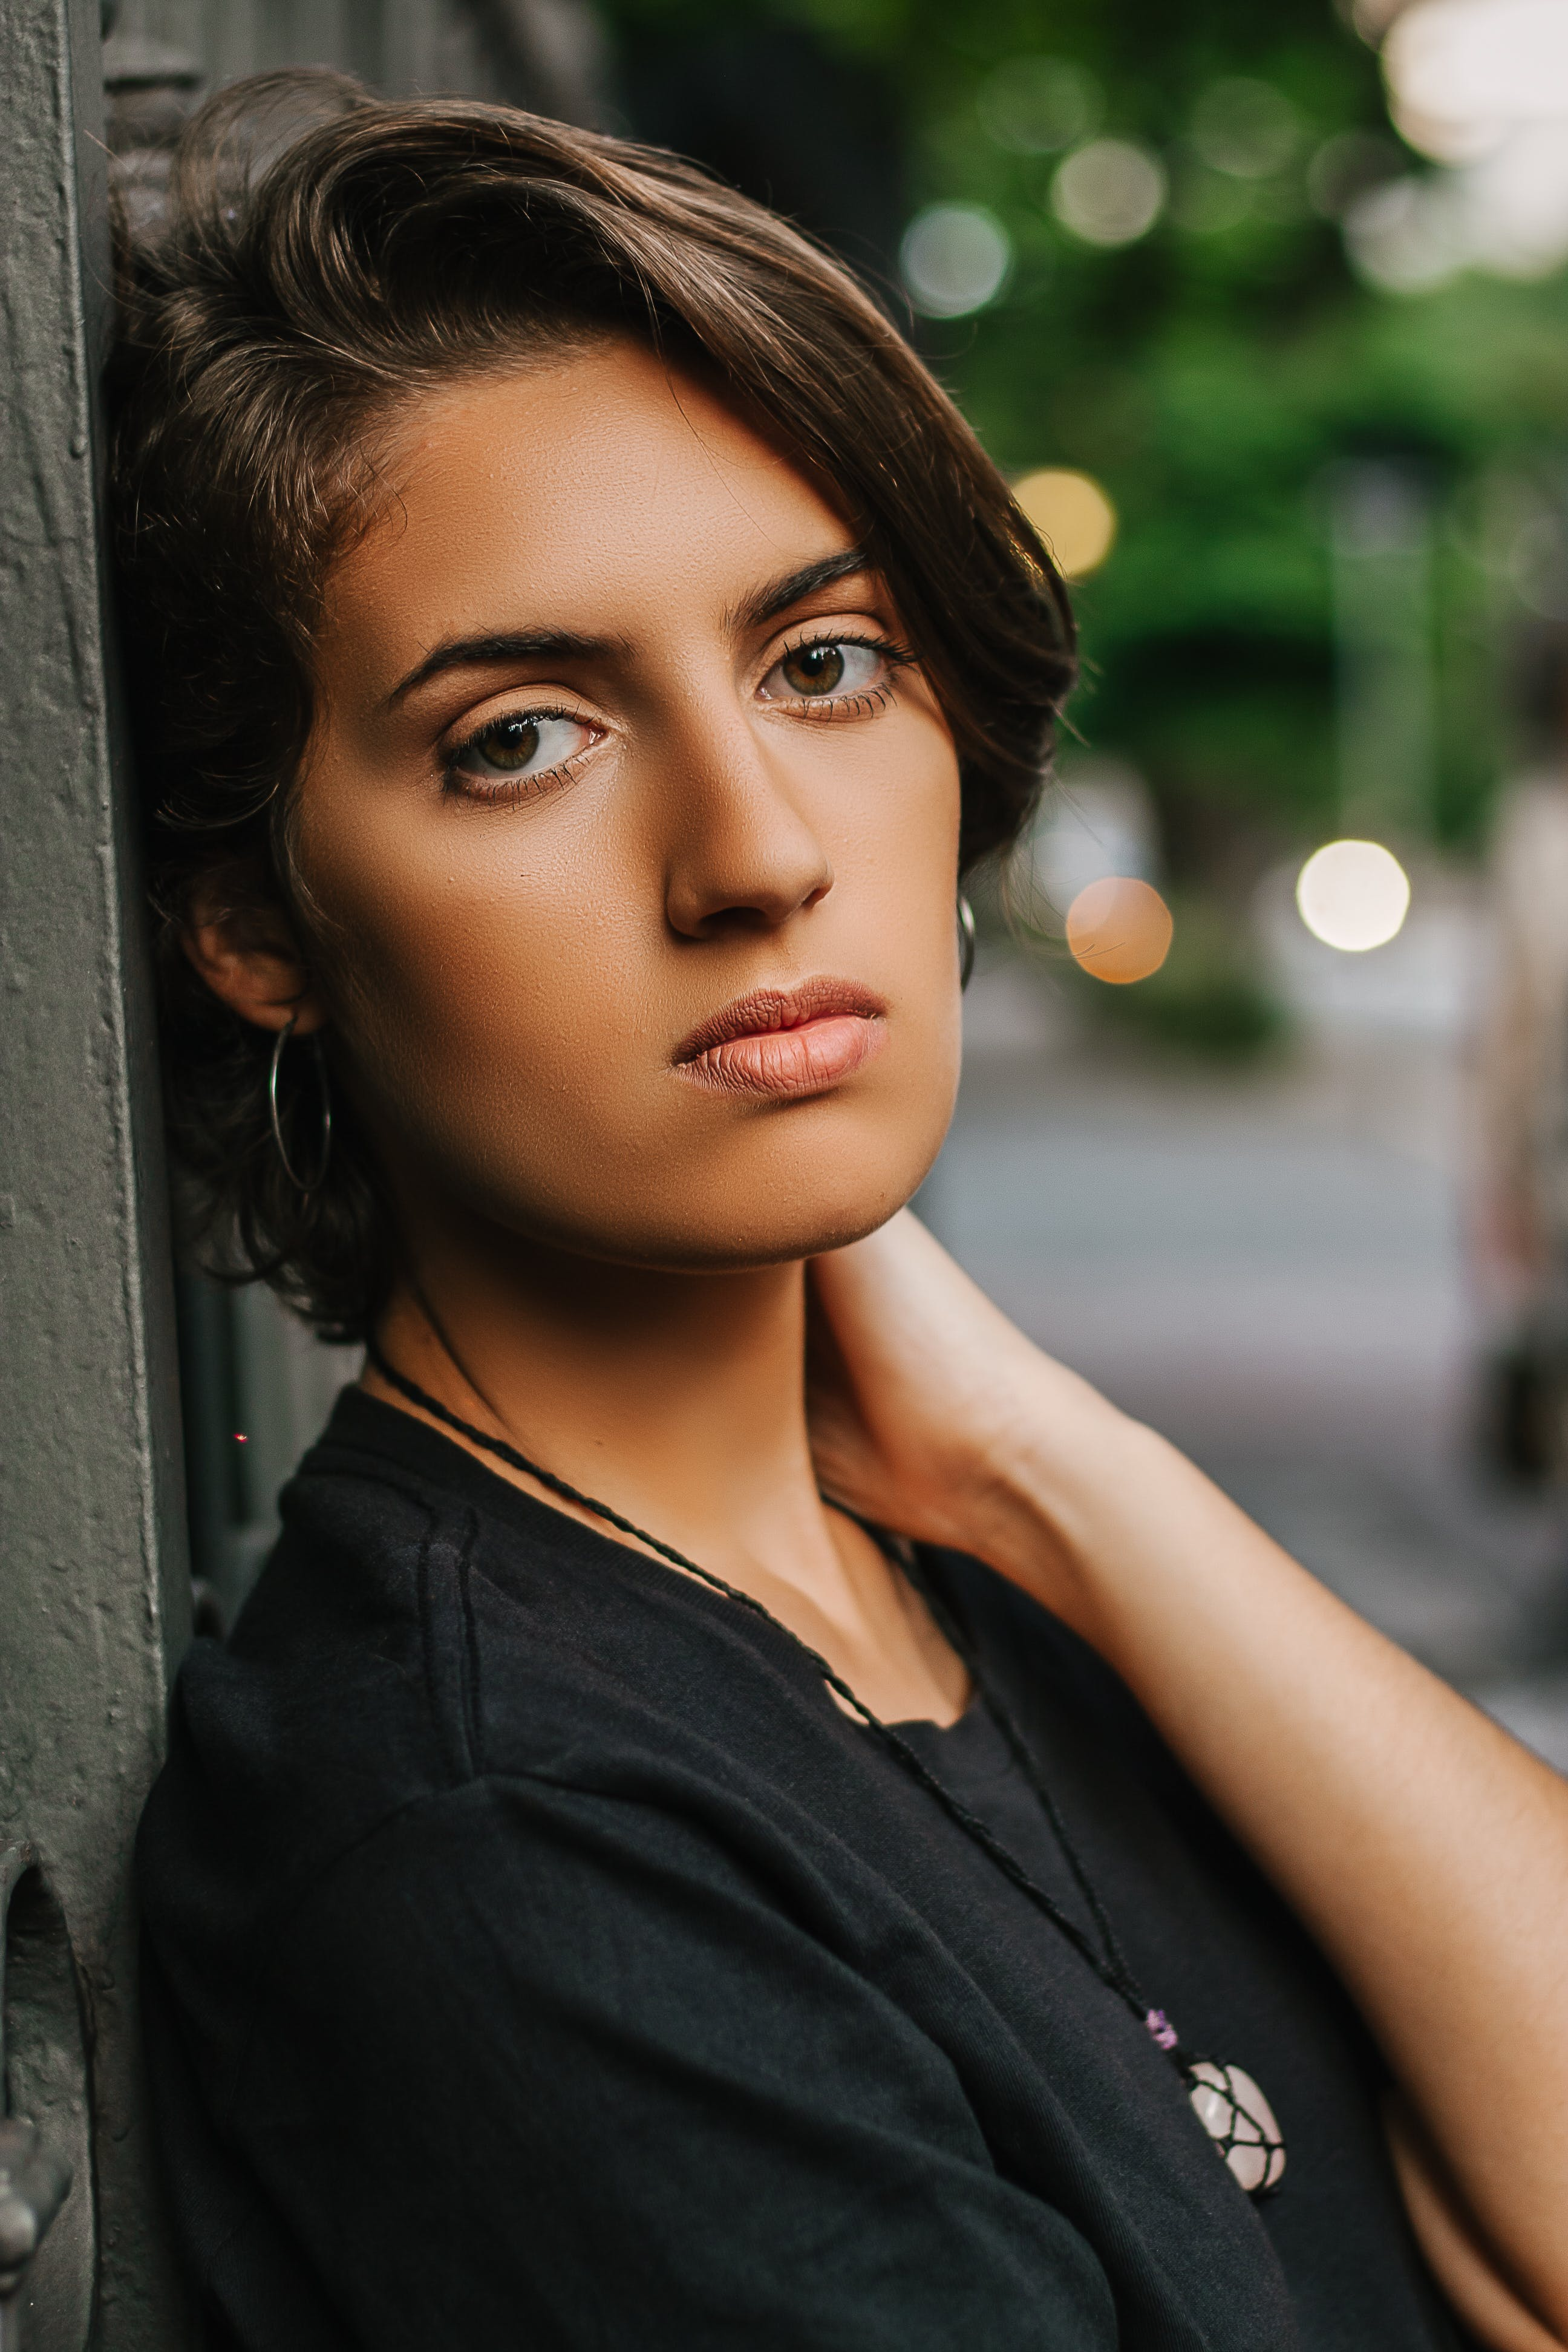 Woman Wearing Black Top Leaning On Wall